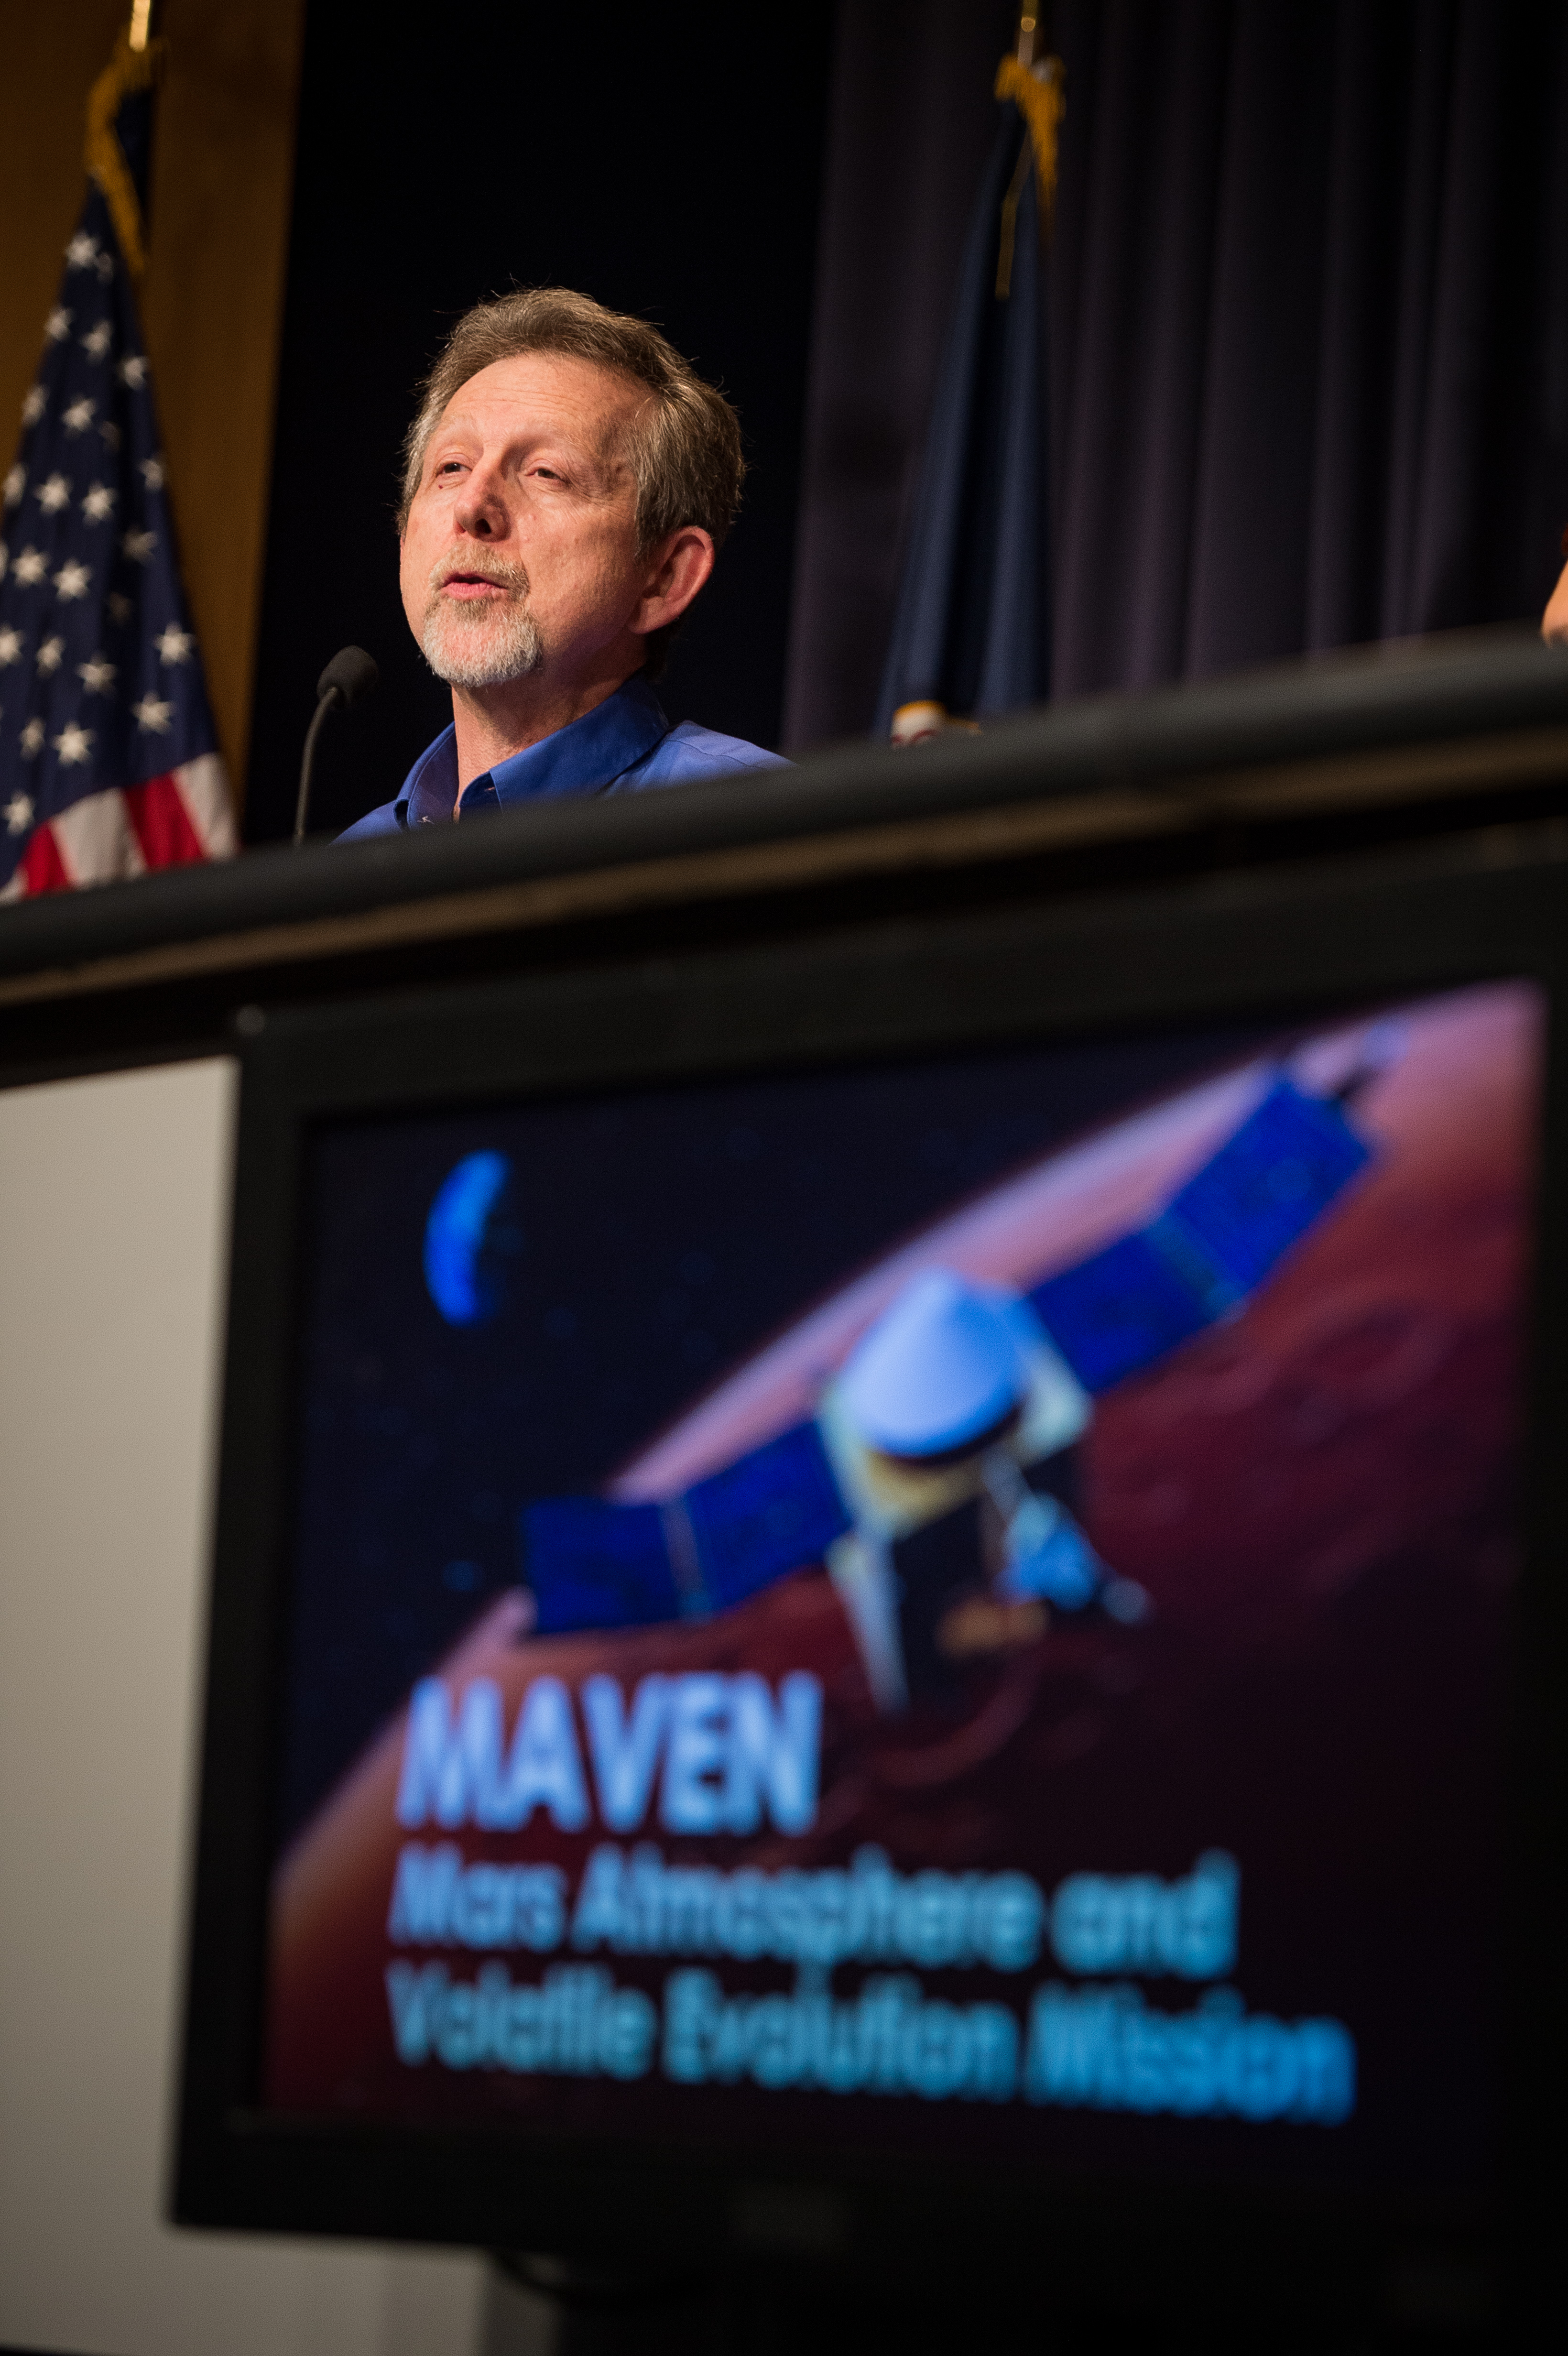 MAVEN Press Briefing: Jim Green Discusses Launch